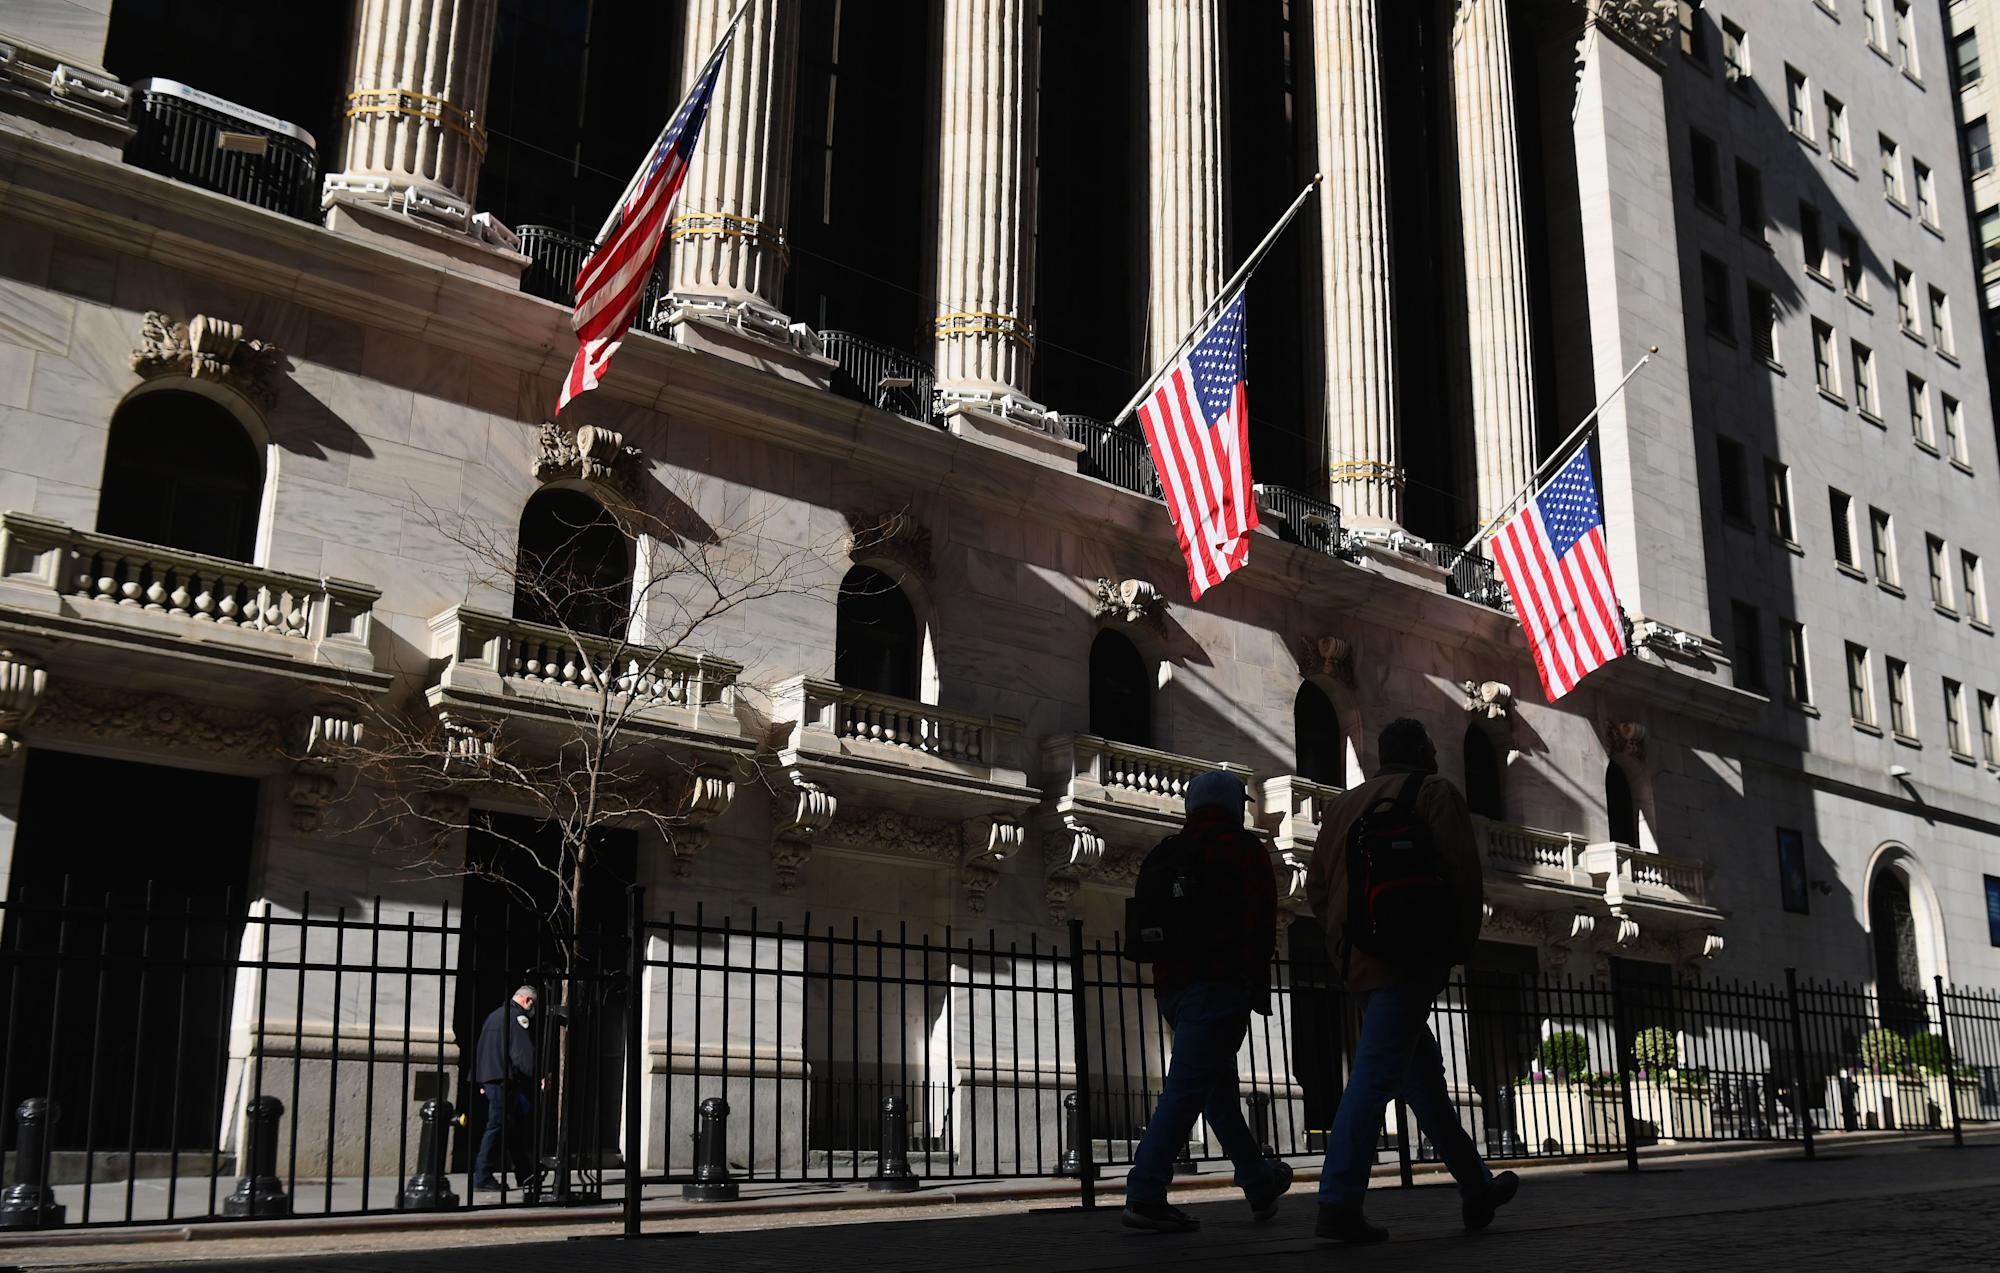 Stock market news live updates: Stock futures tick up, adding to record levels - Yahoo Finance